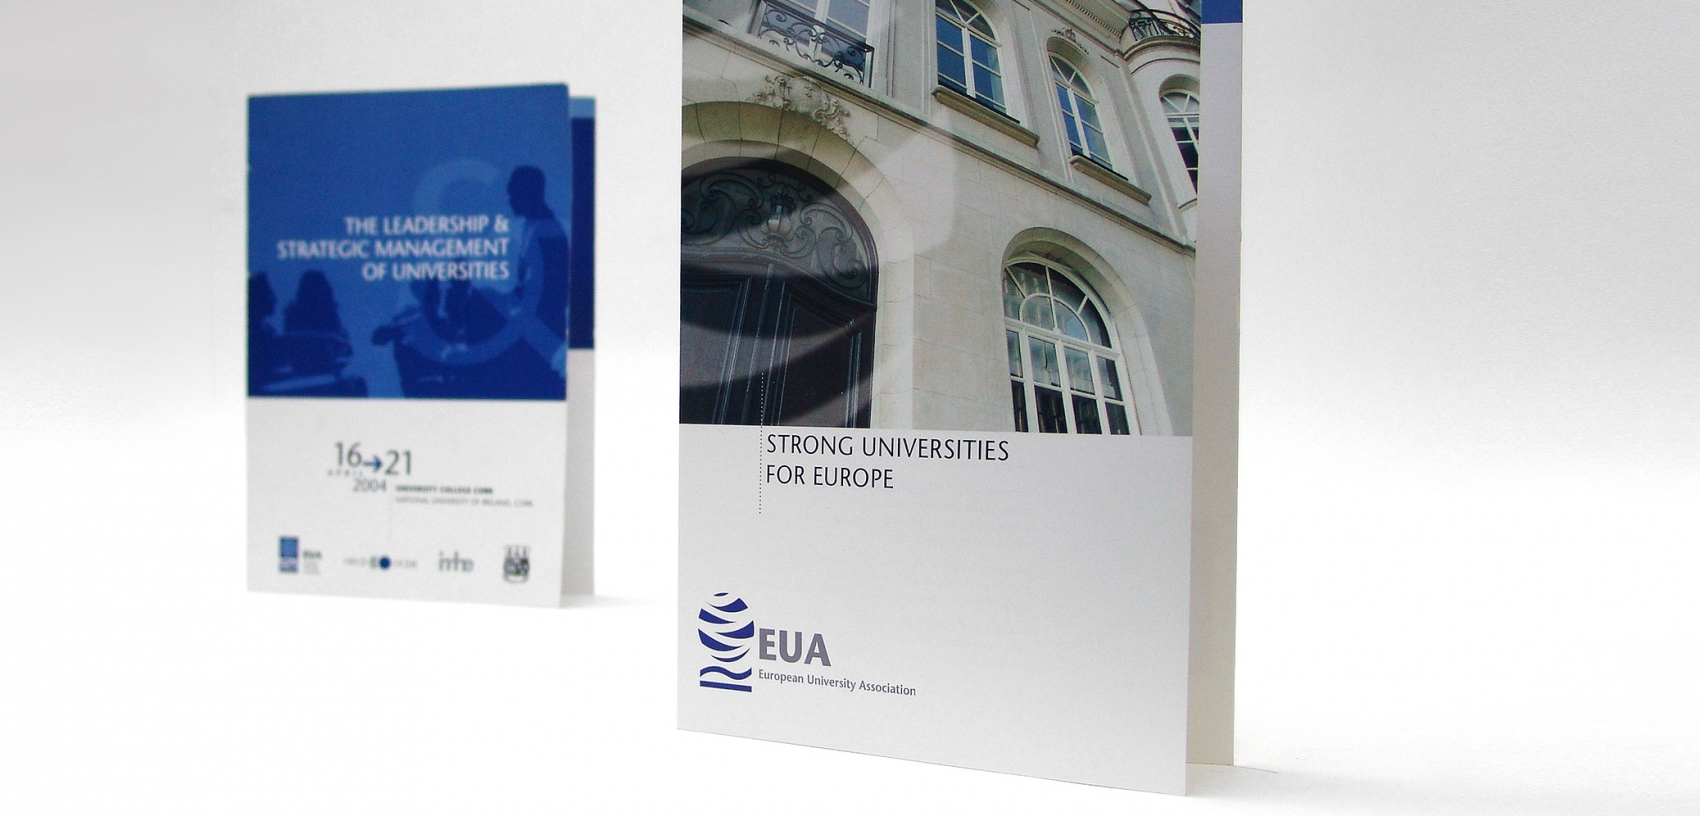 EUA Strong University for Europe